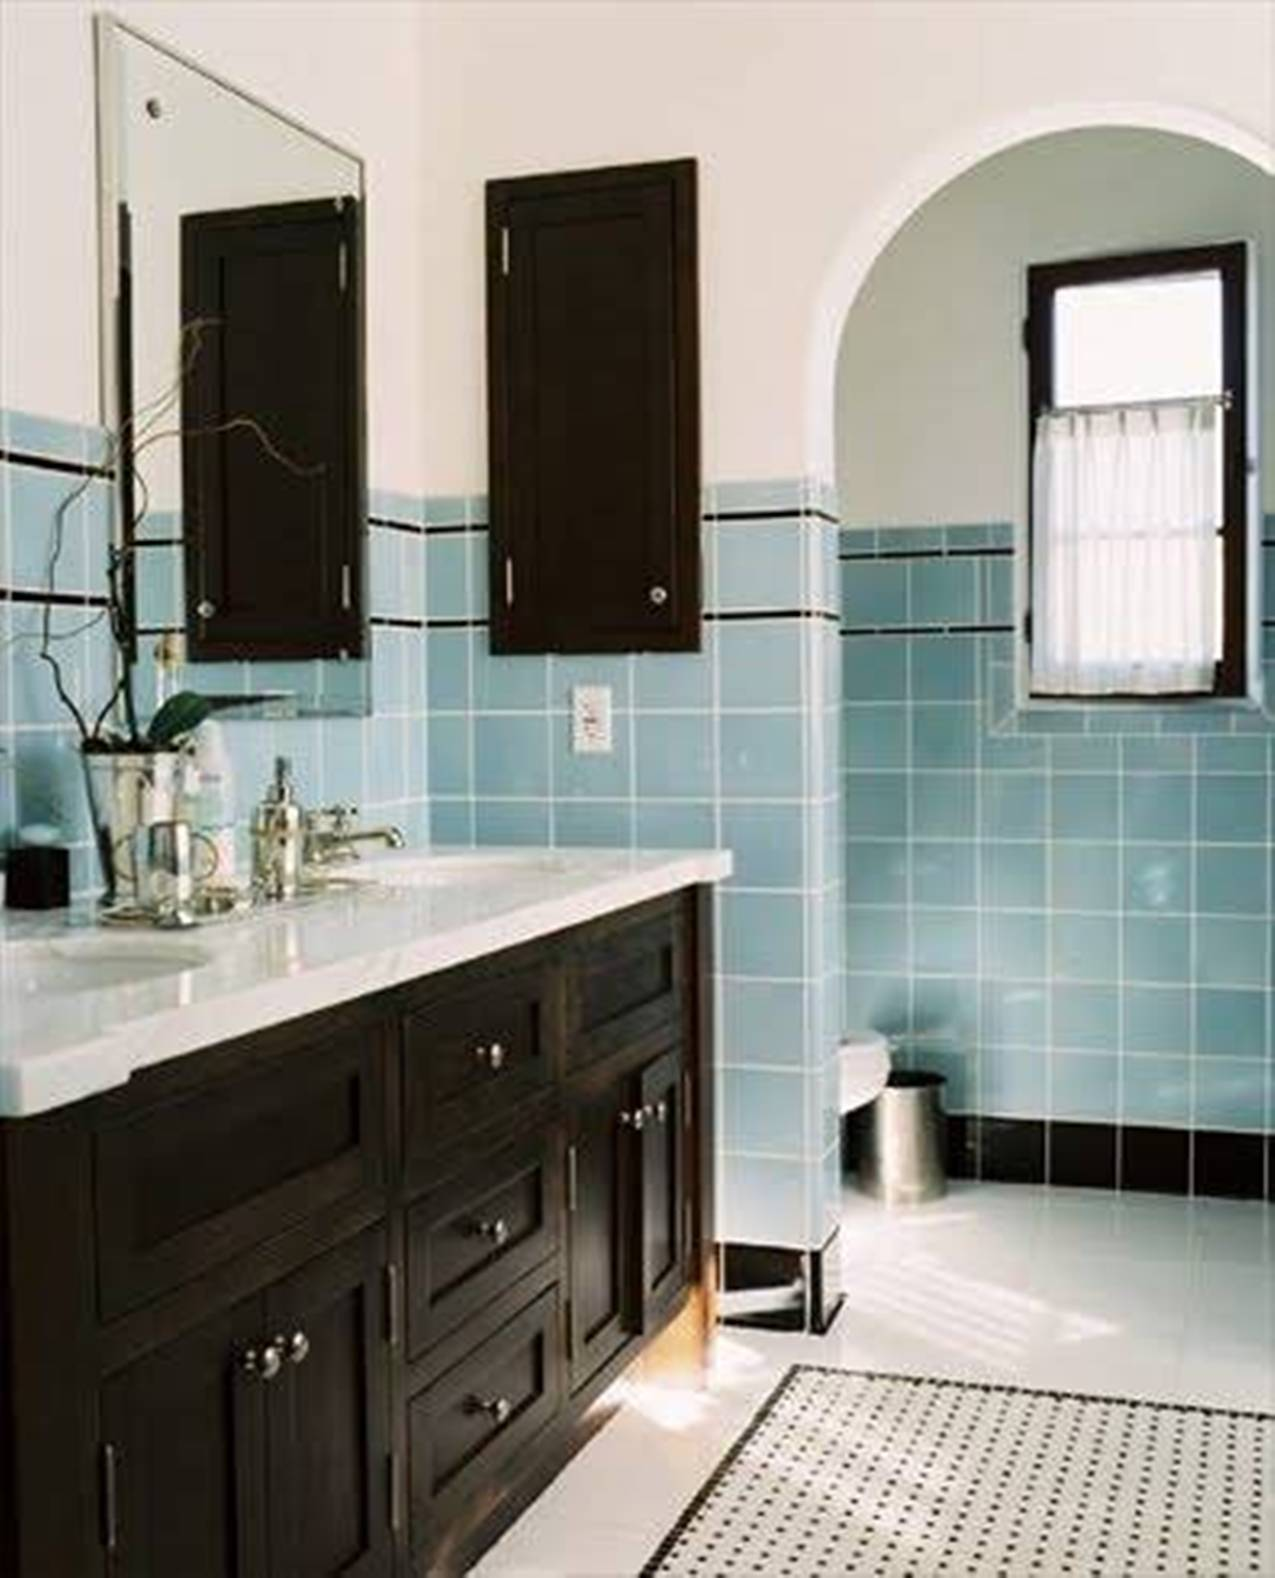 45 magnificent pictures of retro bathroom tile design ideas